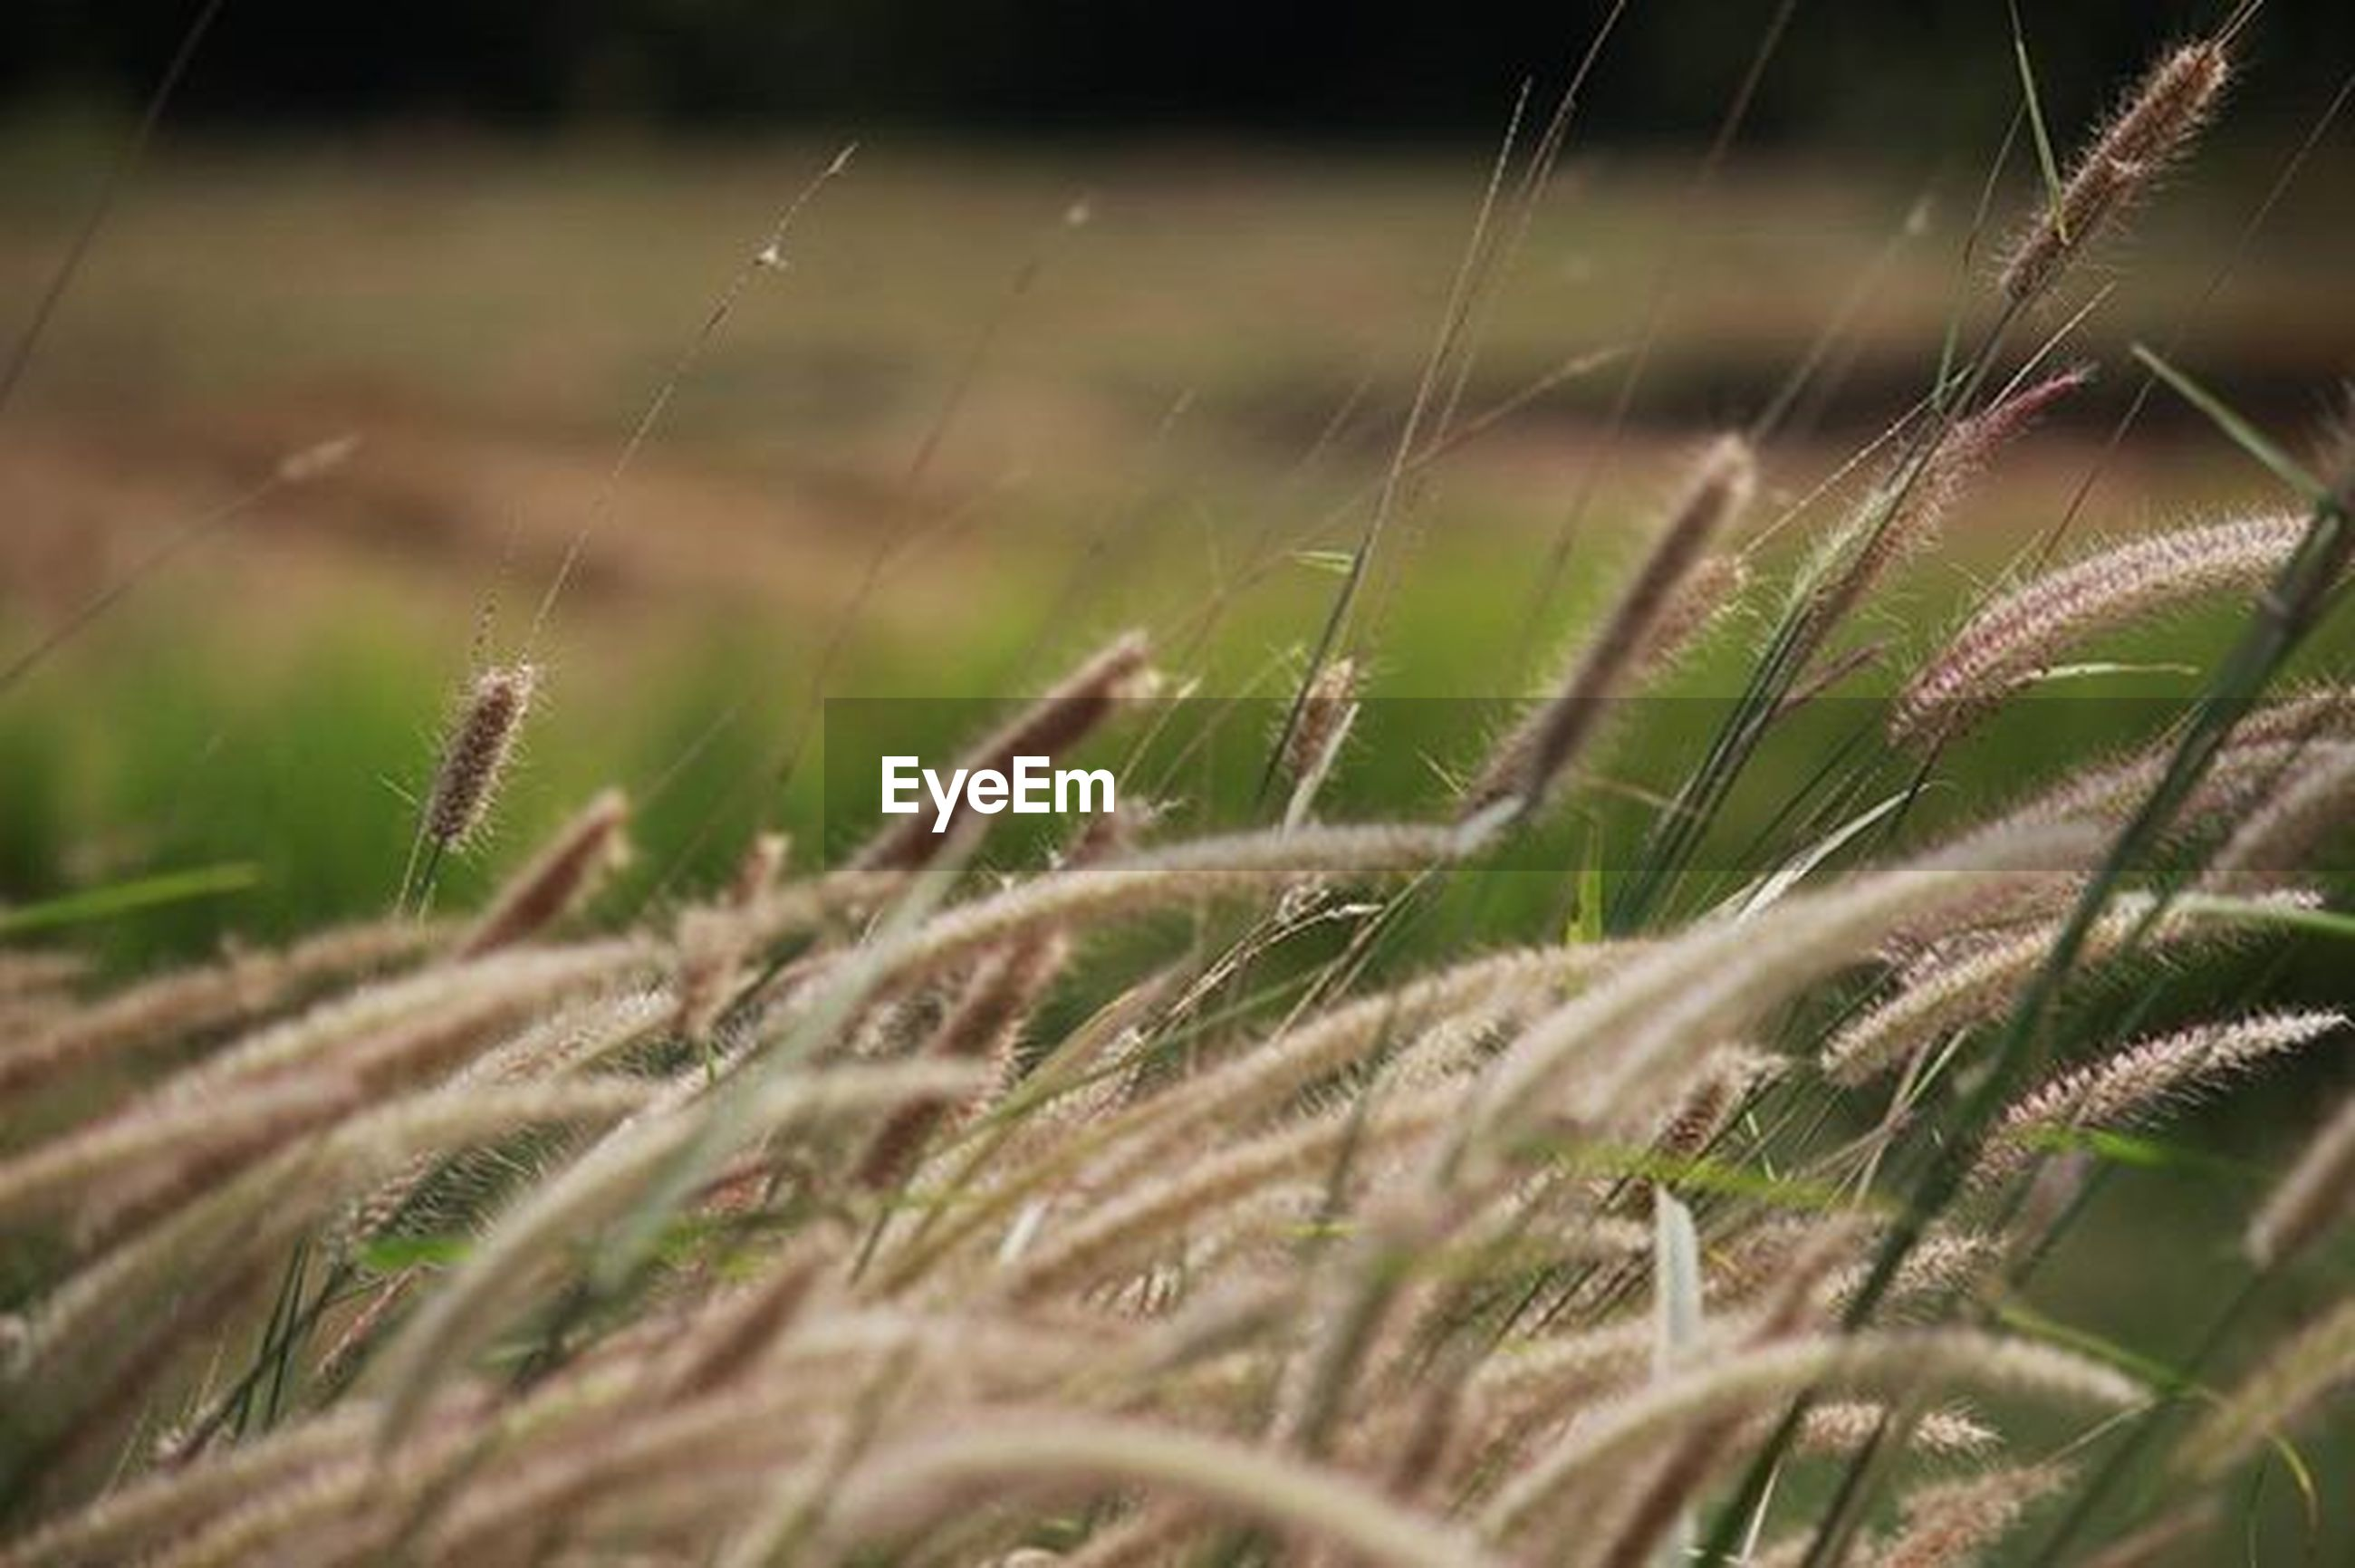 nature, cereal plant, growth, no people, agriculture, outdoors, close-up, day, plant, field, tranquility, rural scene, beauty in nature, grass, wheat, freshness